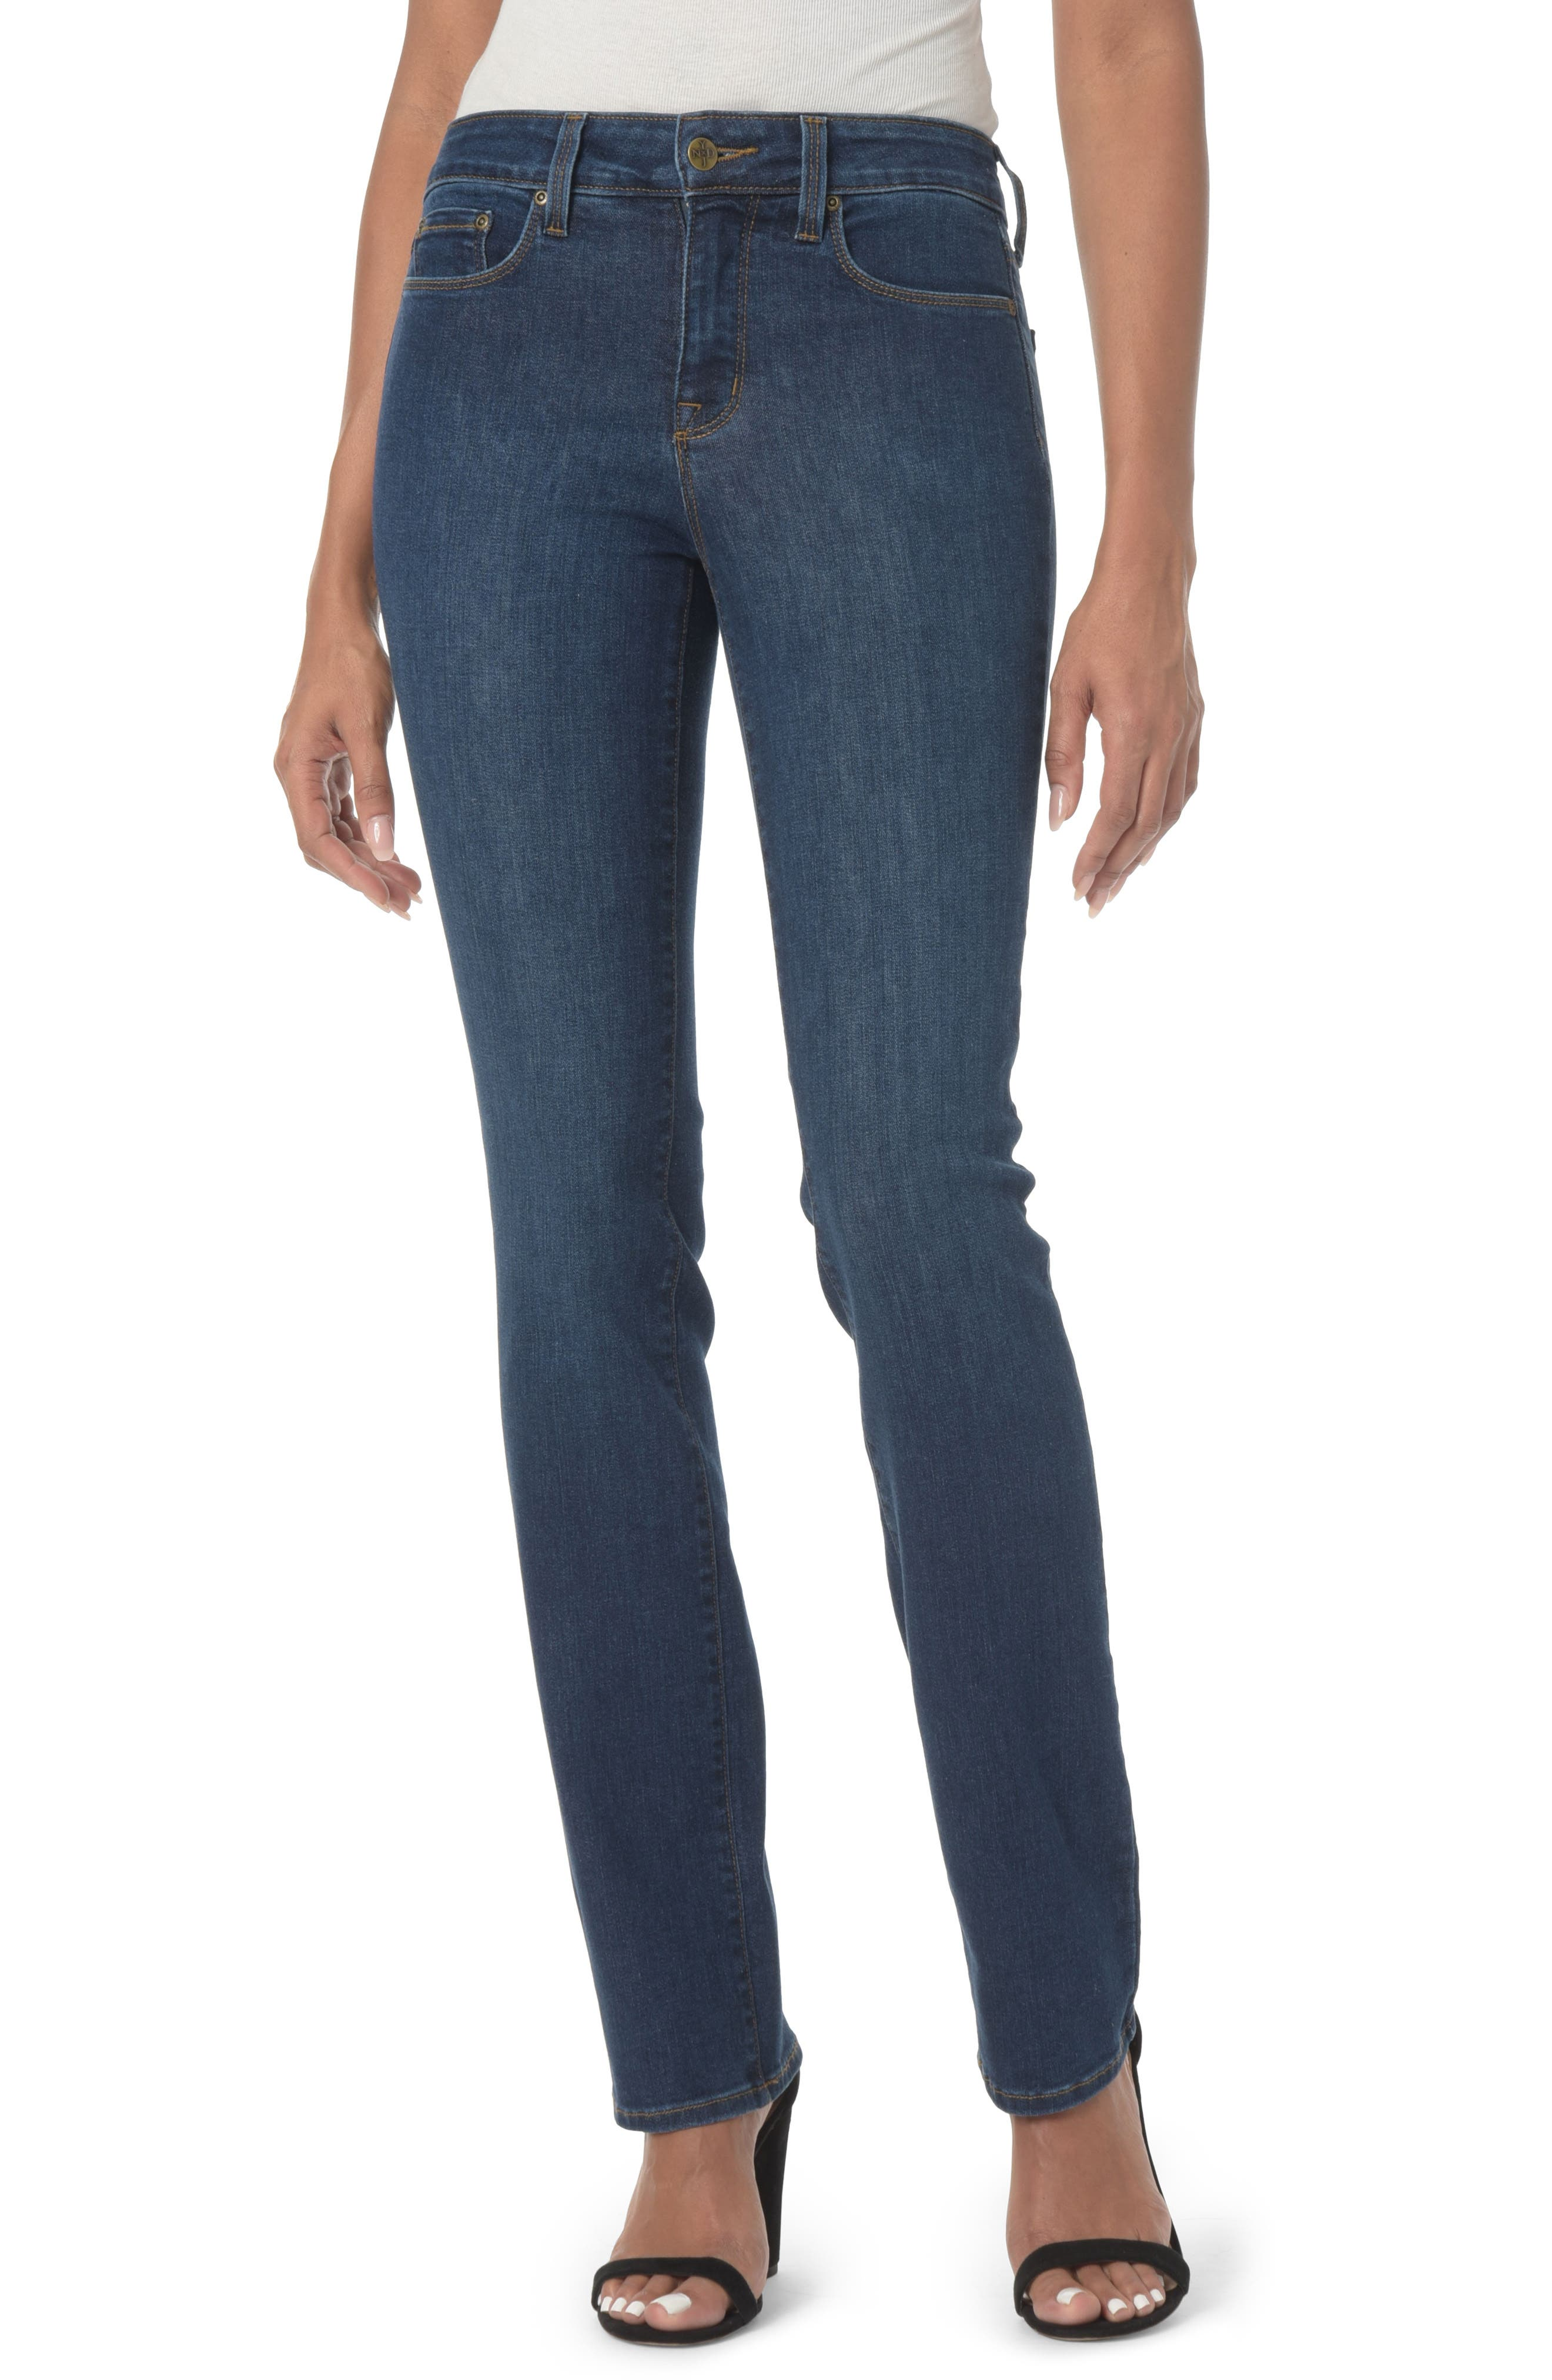 Alternate Image 1 Selected - NYDJ Marilyn Stretch Straight Leg Jeans (Cooper) (Regular & Petite)